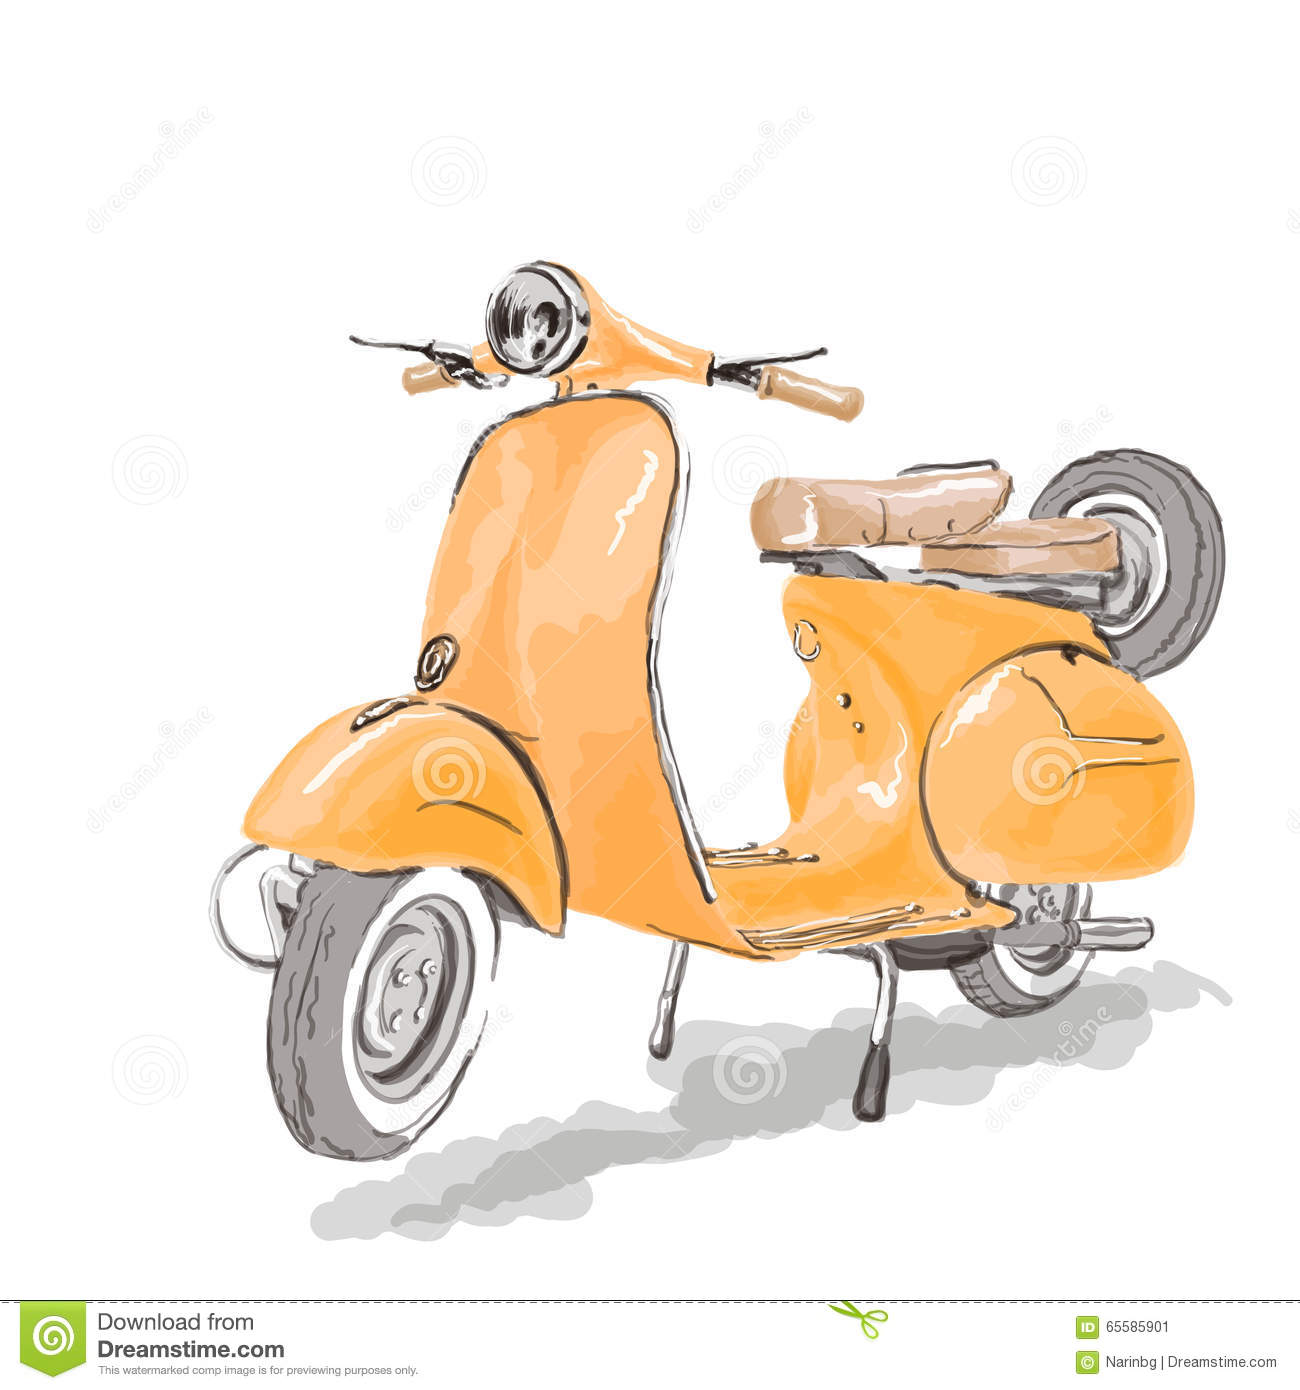 vespa scooter stock vector illustration of vintage. Black Bedroom Furniture Sets. Home Design Ideas